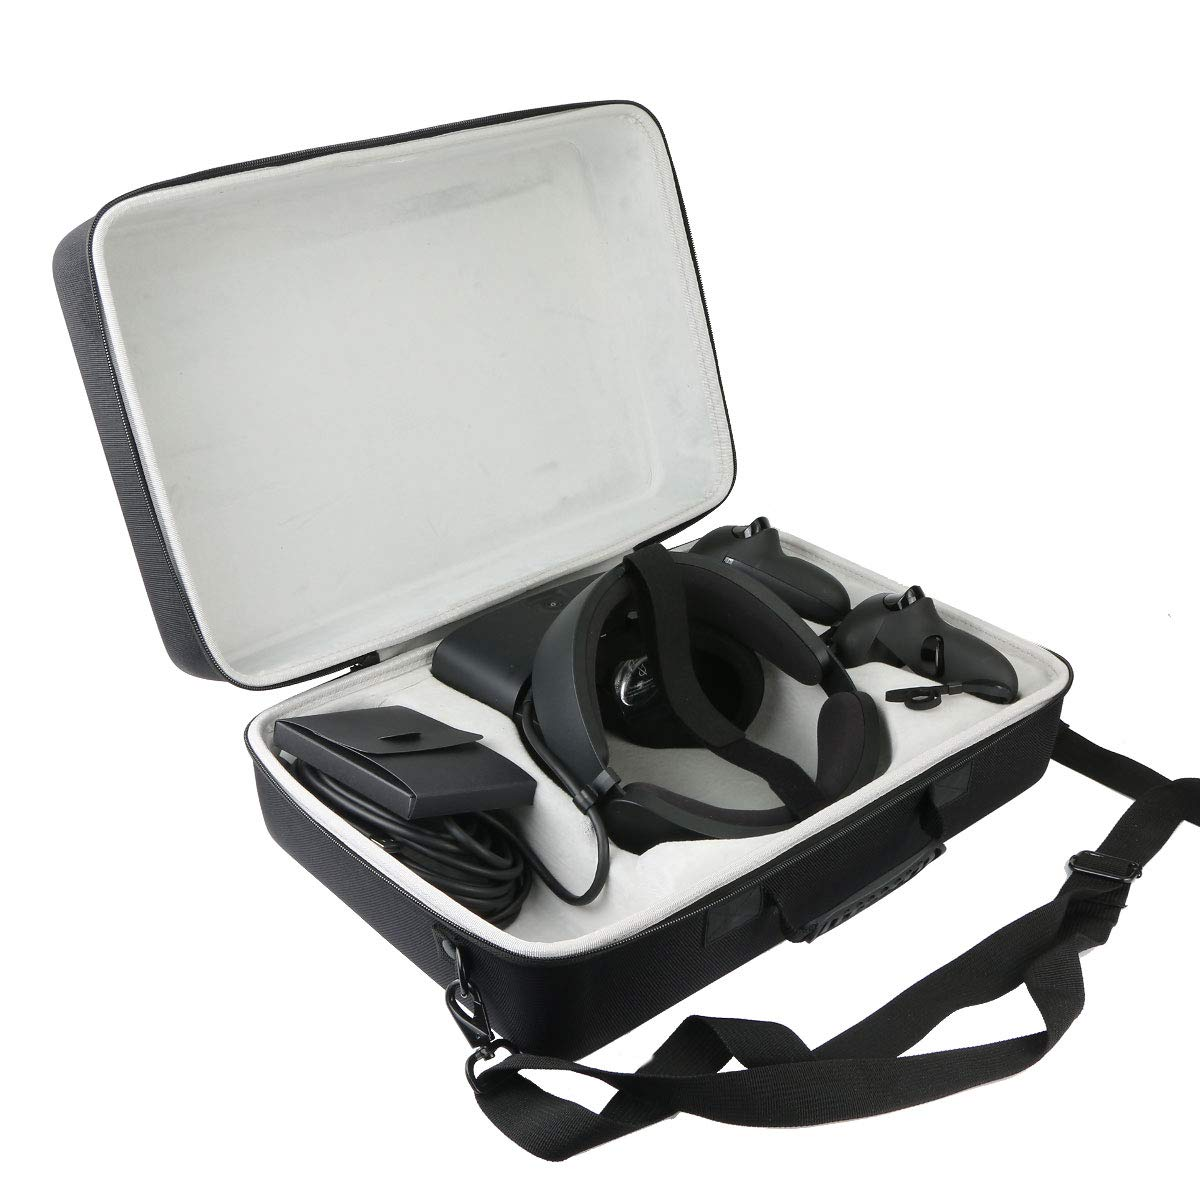 Khanka Hard Travel Case Replacement for Oculus Rift S PC-Powered VR Gaming Headset by khanka